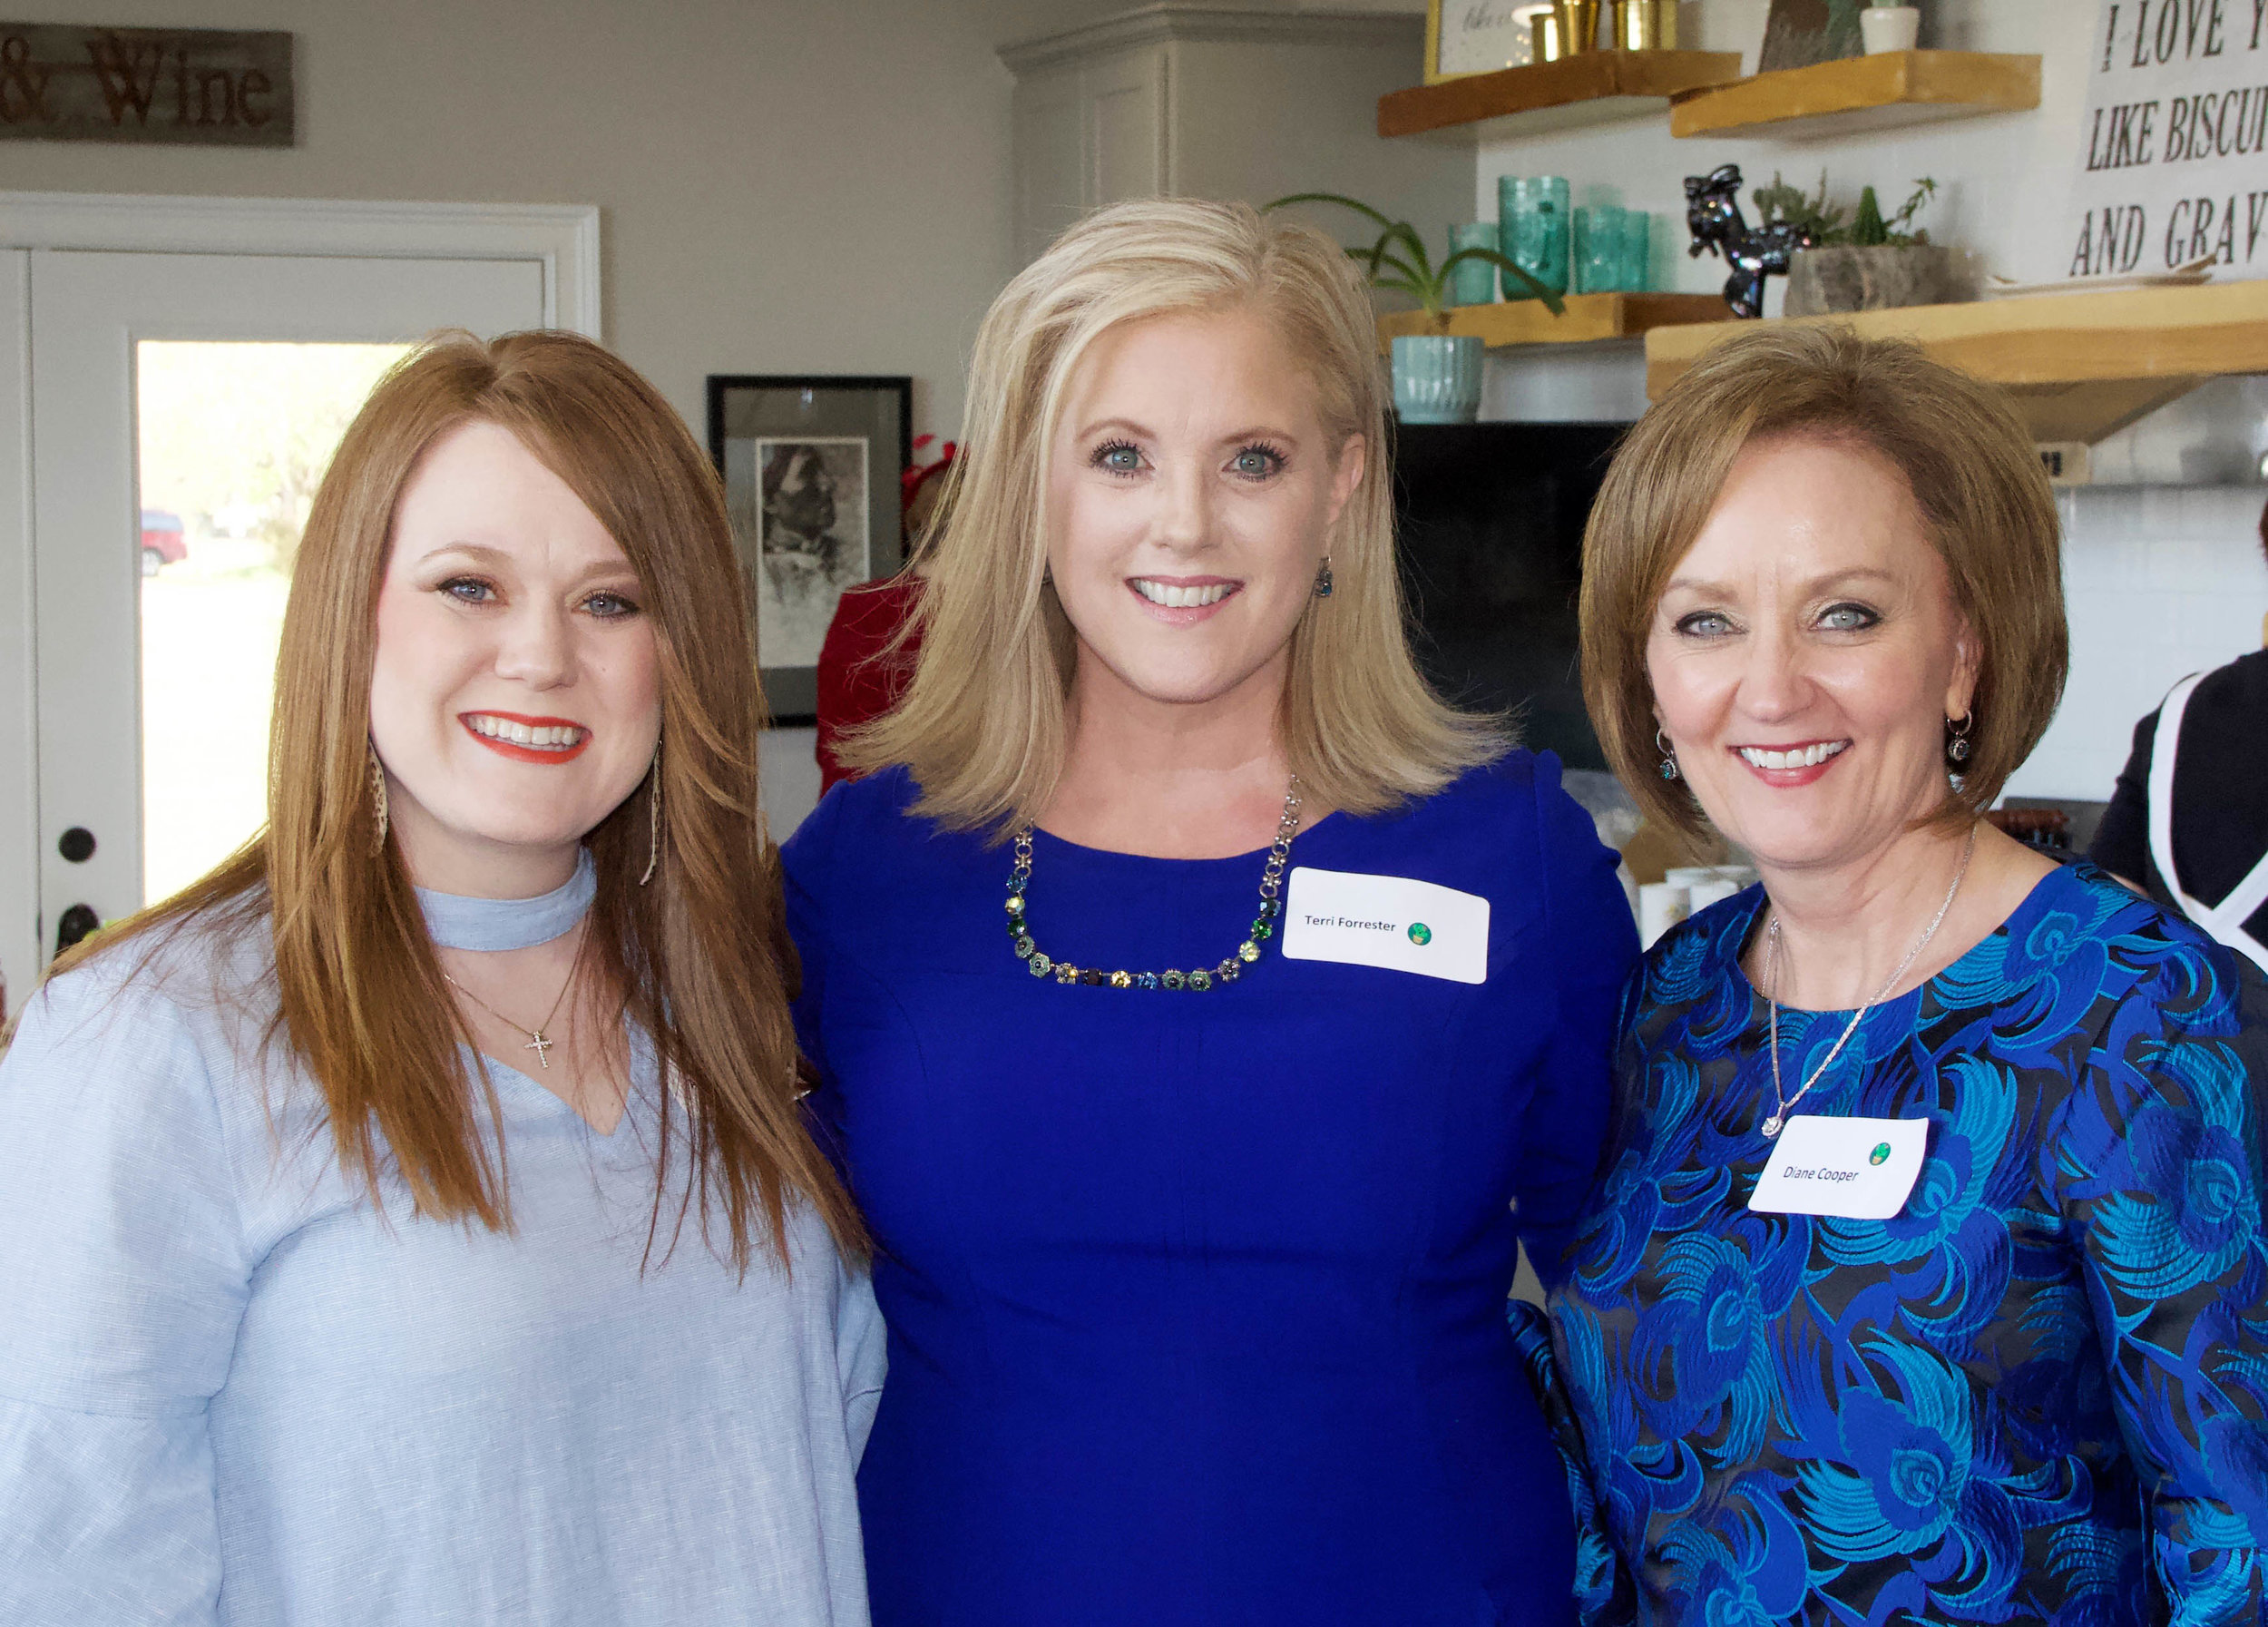 Amy Lawrence, Terri Forrester and Diane Cooper